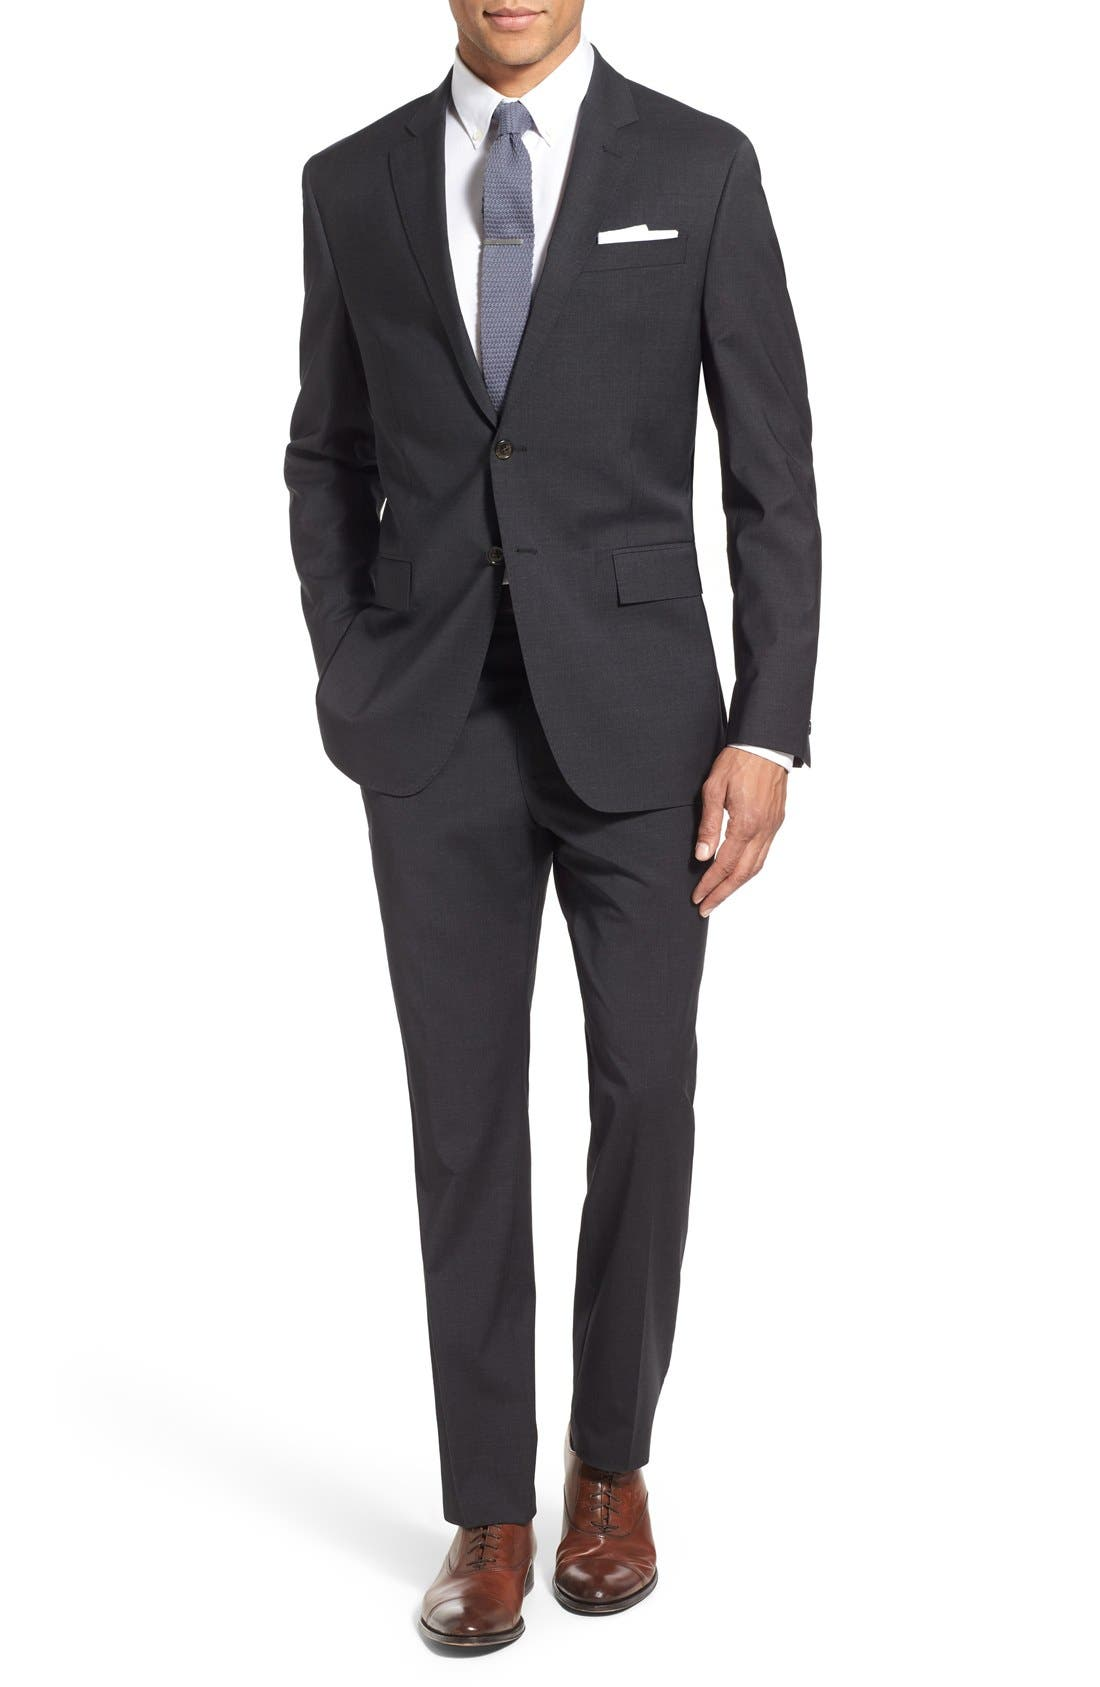 Alternate Image 1 Selected - Todd Snyder White Label 'May Fair' Trim Fit Solid Stretch Wool Suit